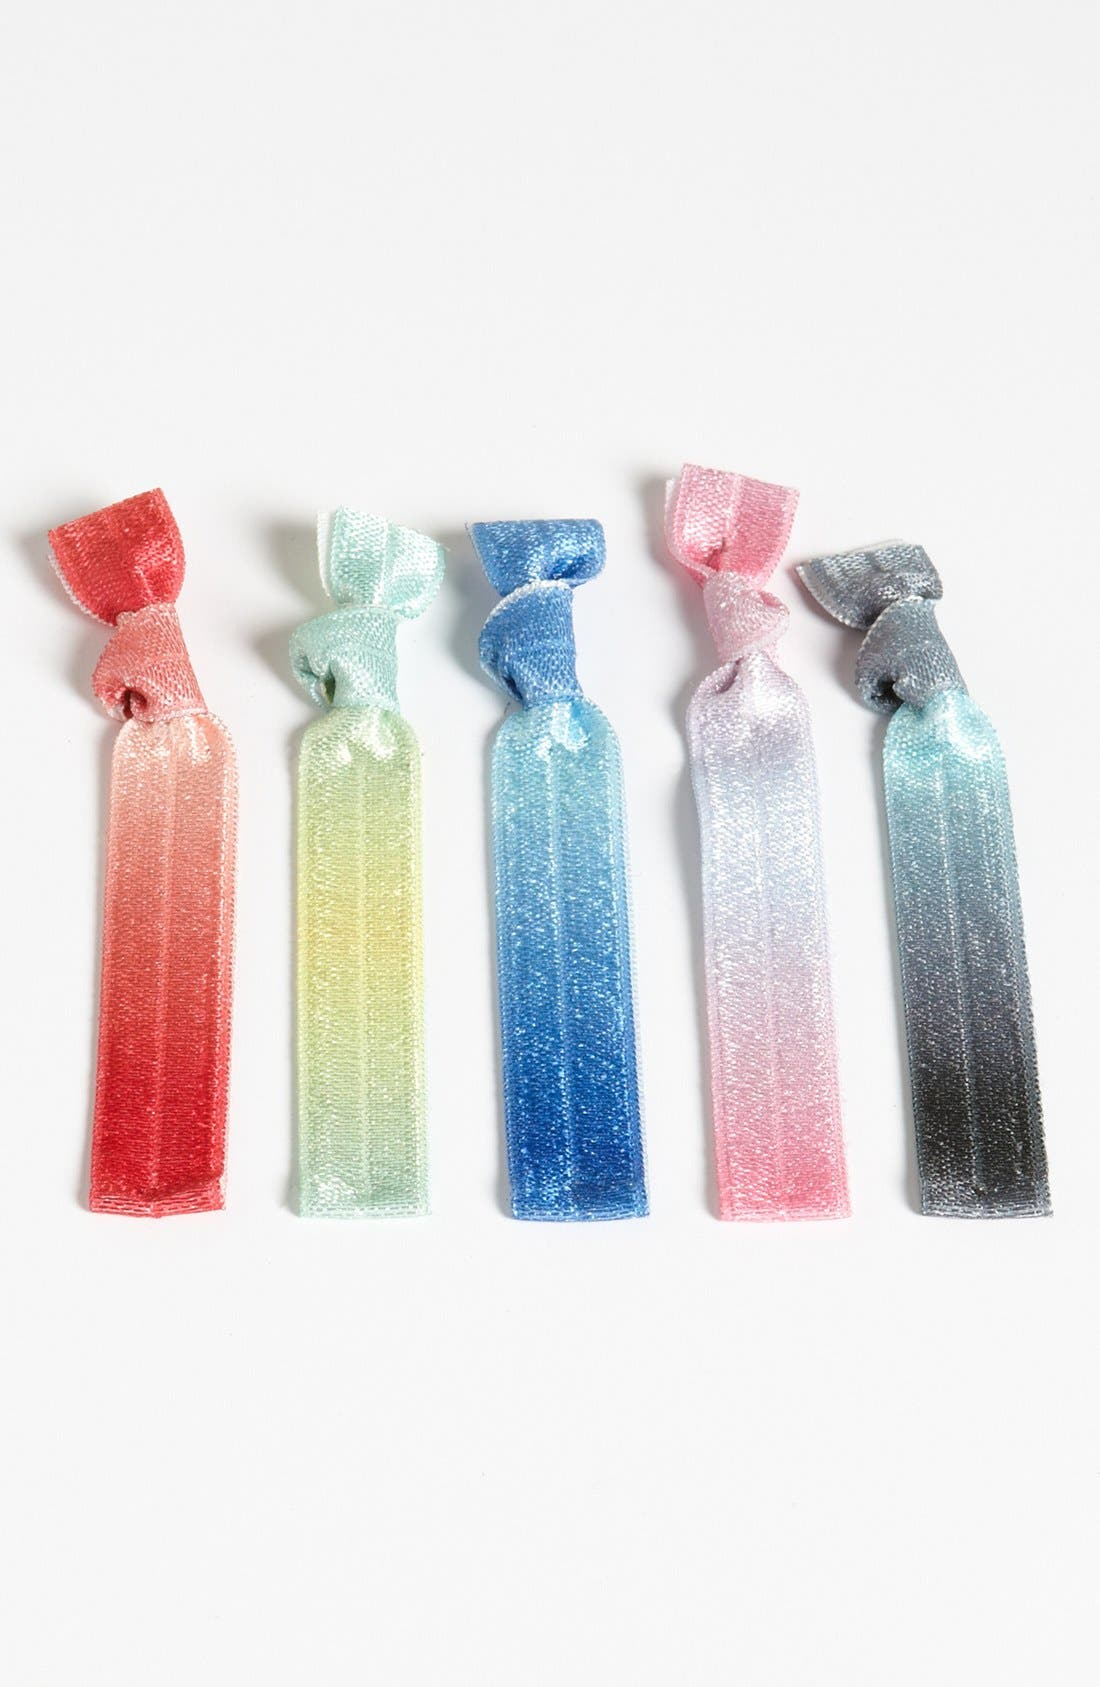 Alternate Image 1 Selected - Kitsch Hair Ties (Set of 5) (Girls)